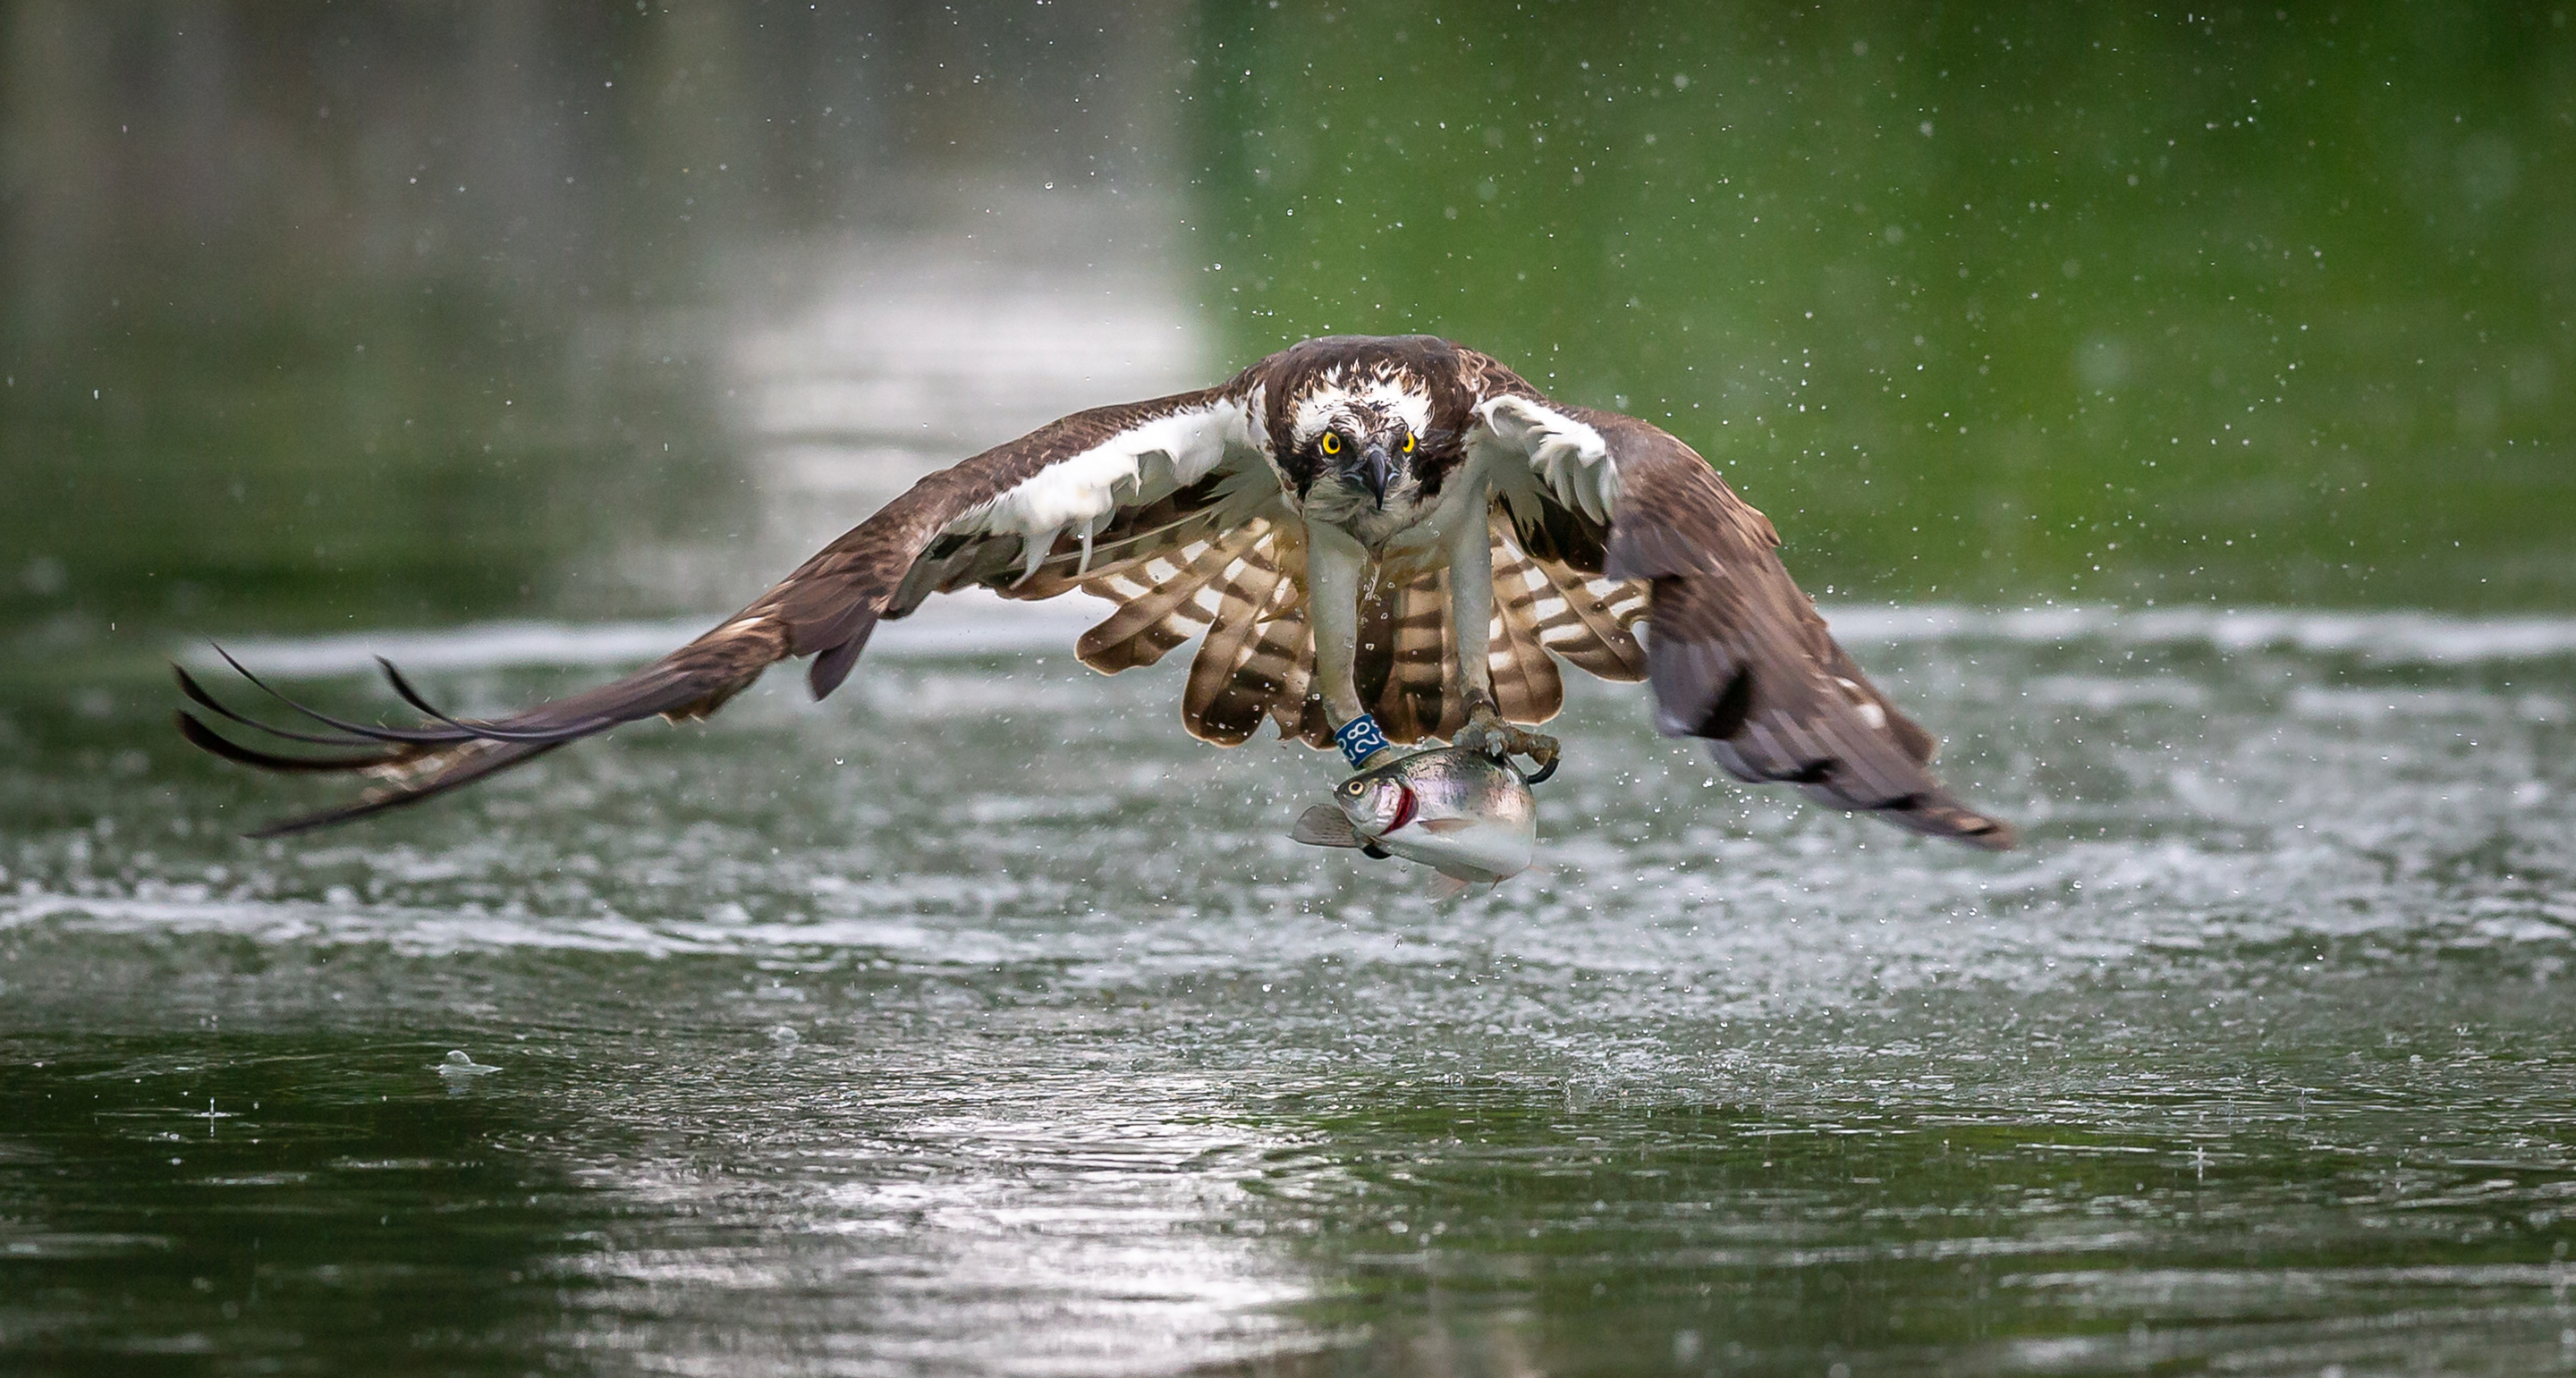 An osprey flying low over a river holds a trout in its claws.